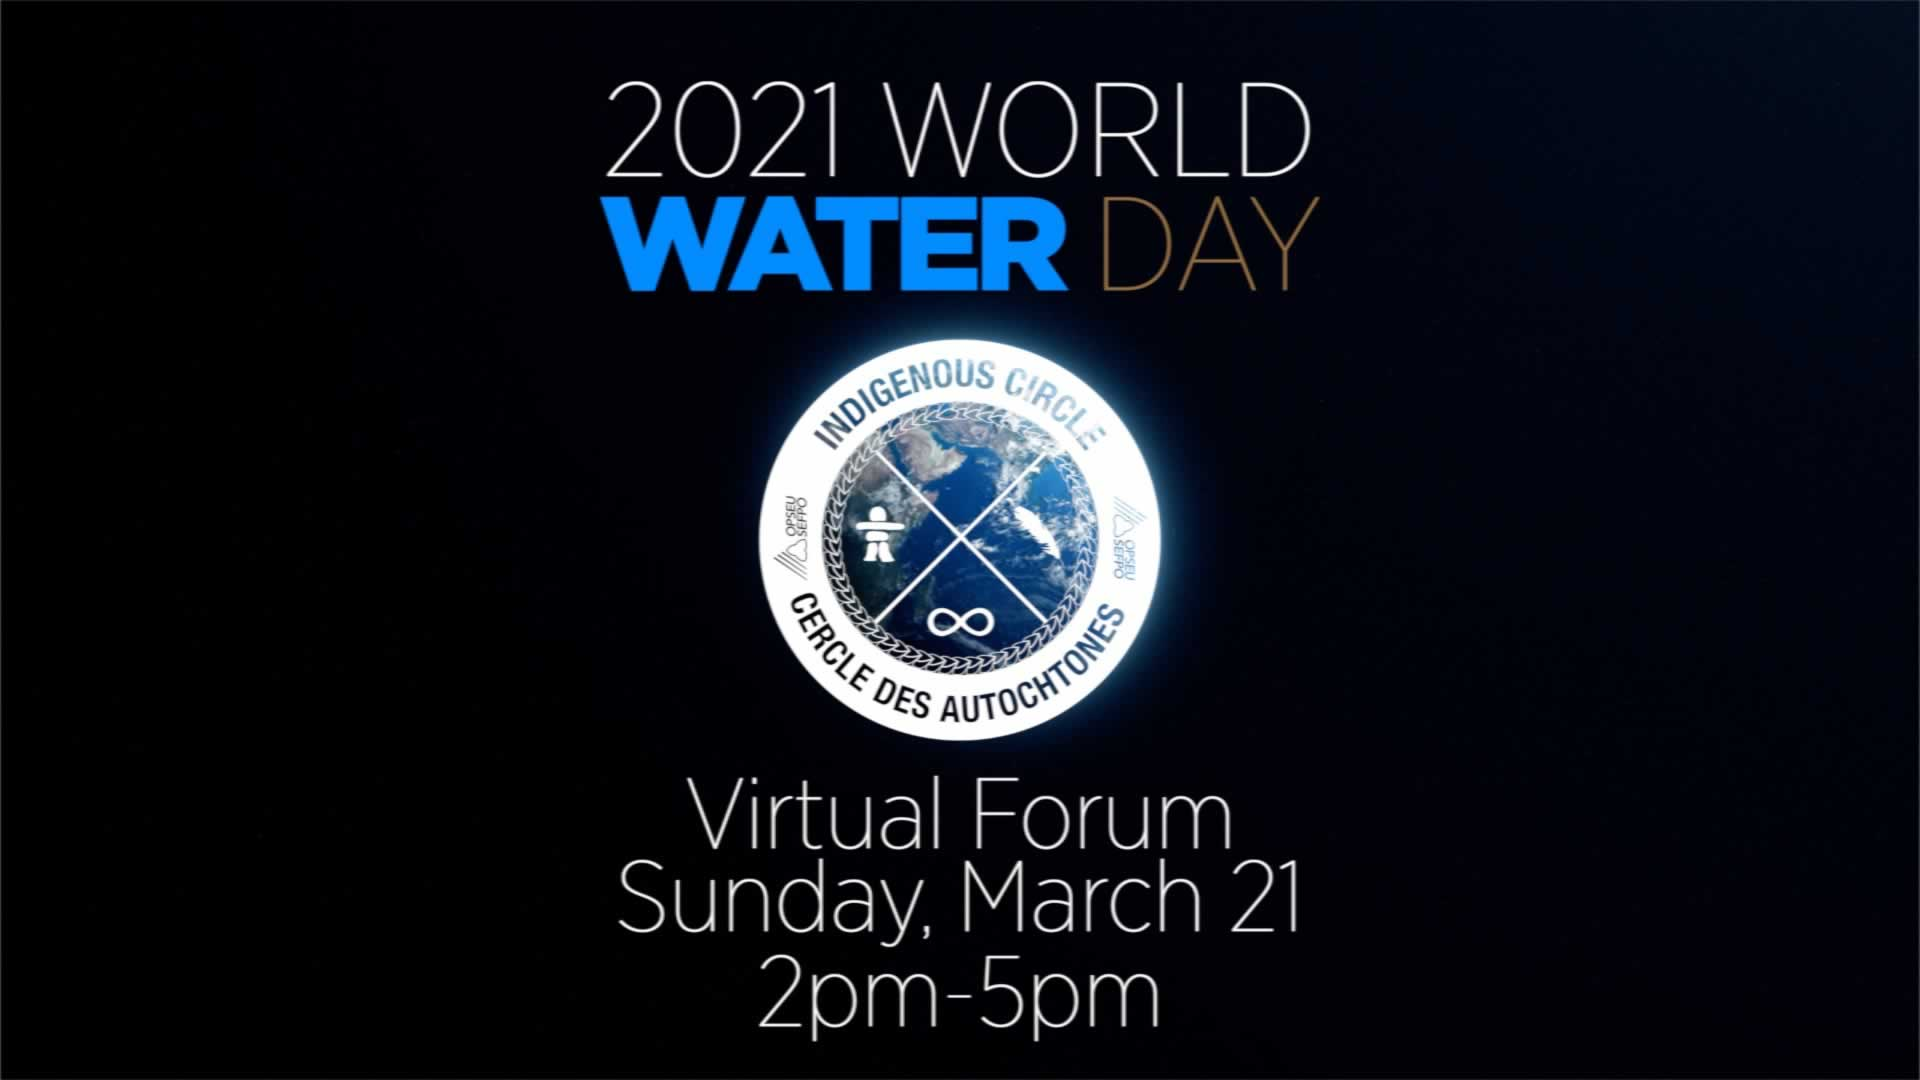 Indigenous Circle hosts World Water Day forum on March 21